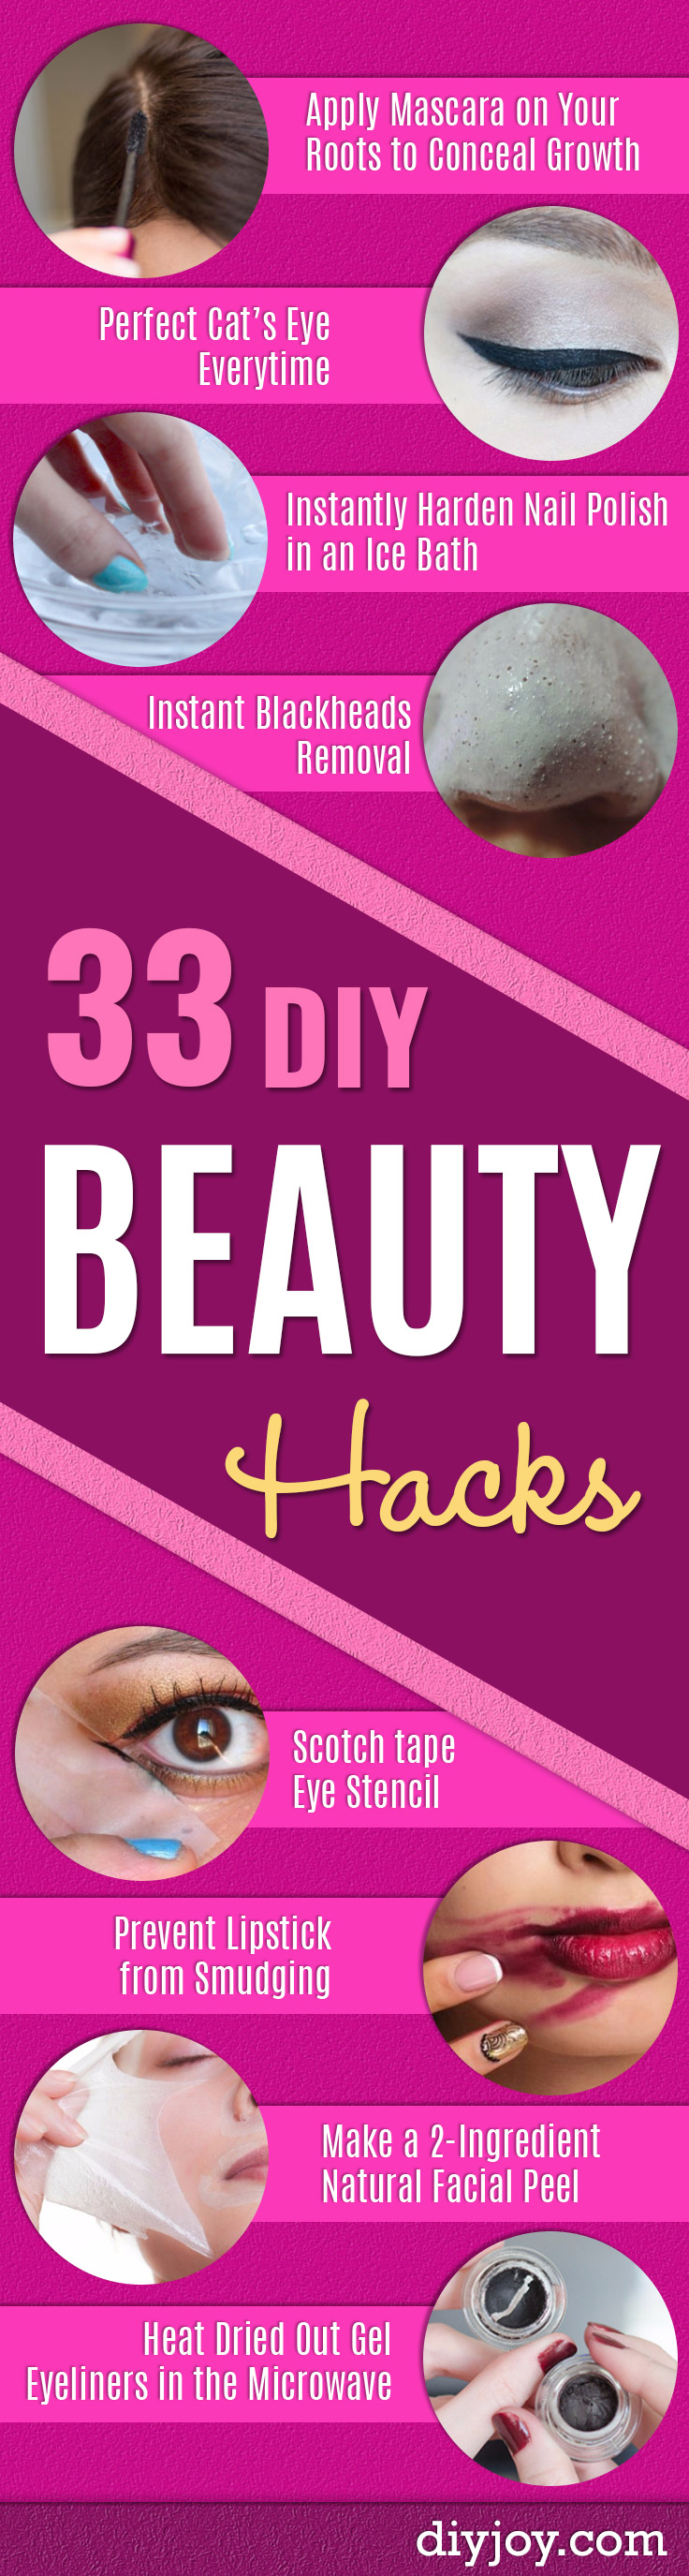 DIY Beauty Hacks - Cool Tips for Makeup, Hair and Nails - Step by Step Tutorials for Fixing Broken Makeup, Eye Shadow, Mascara, Foundation - Quick Beauty Ideas for Best Looks in A Hurry